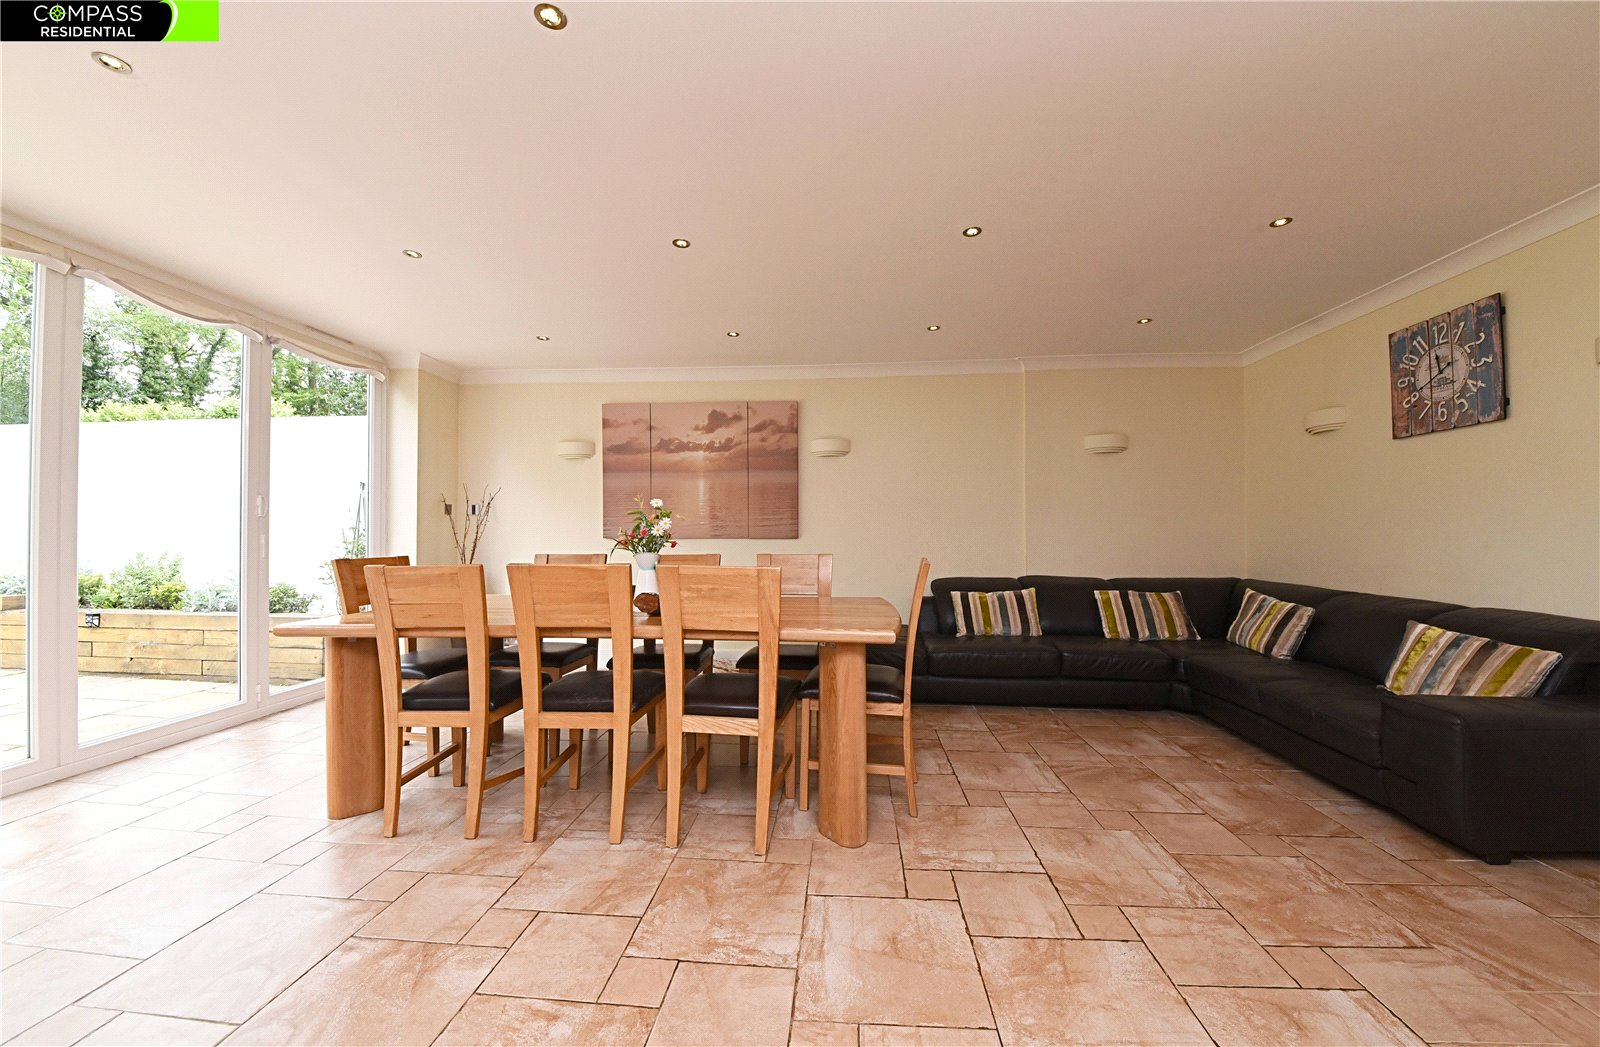 4 bed house for sale in Stanmore, HA7 3AZ  - Property Image 8